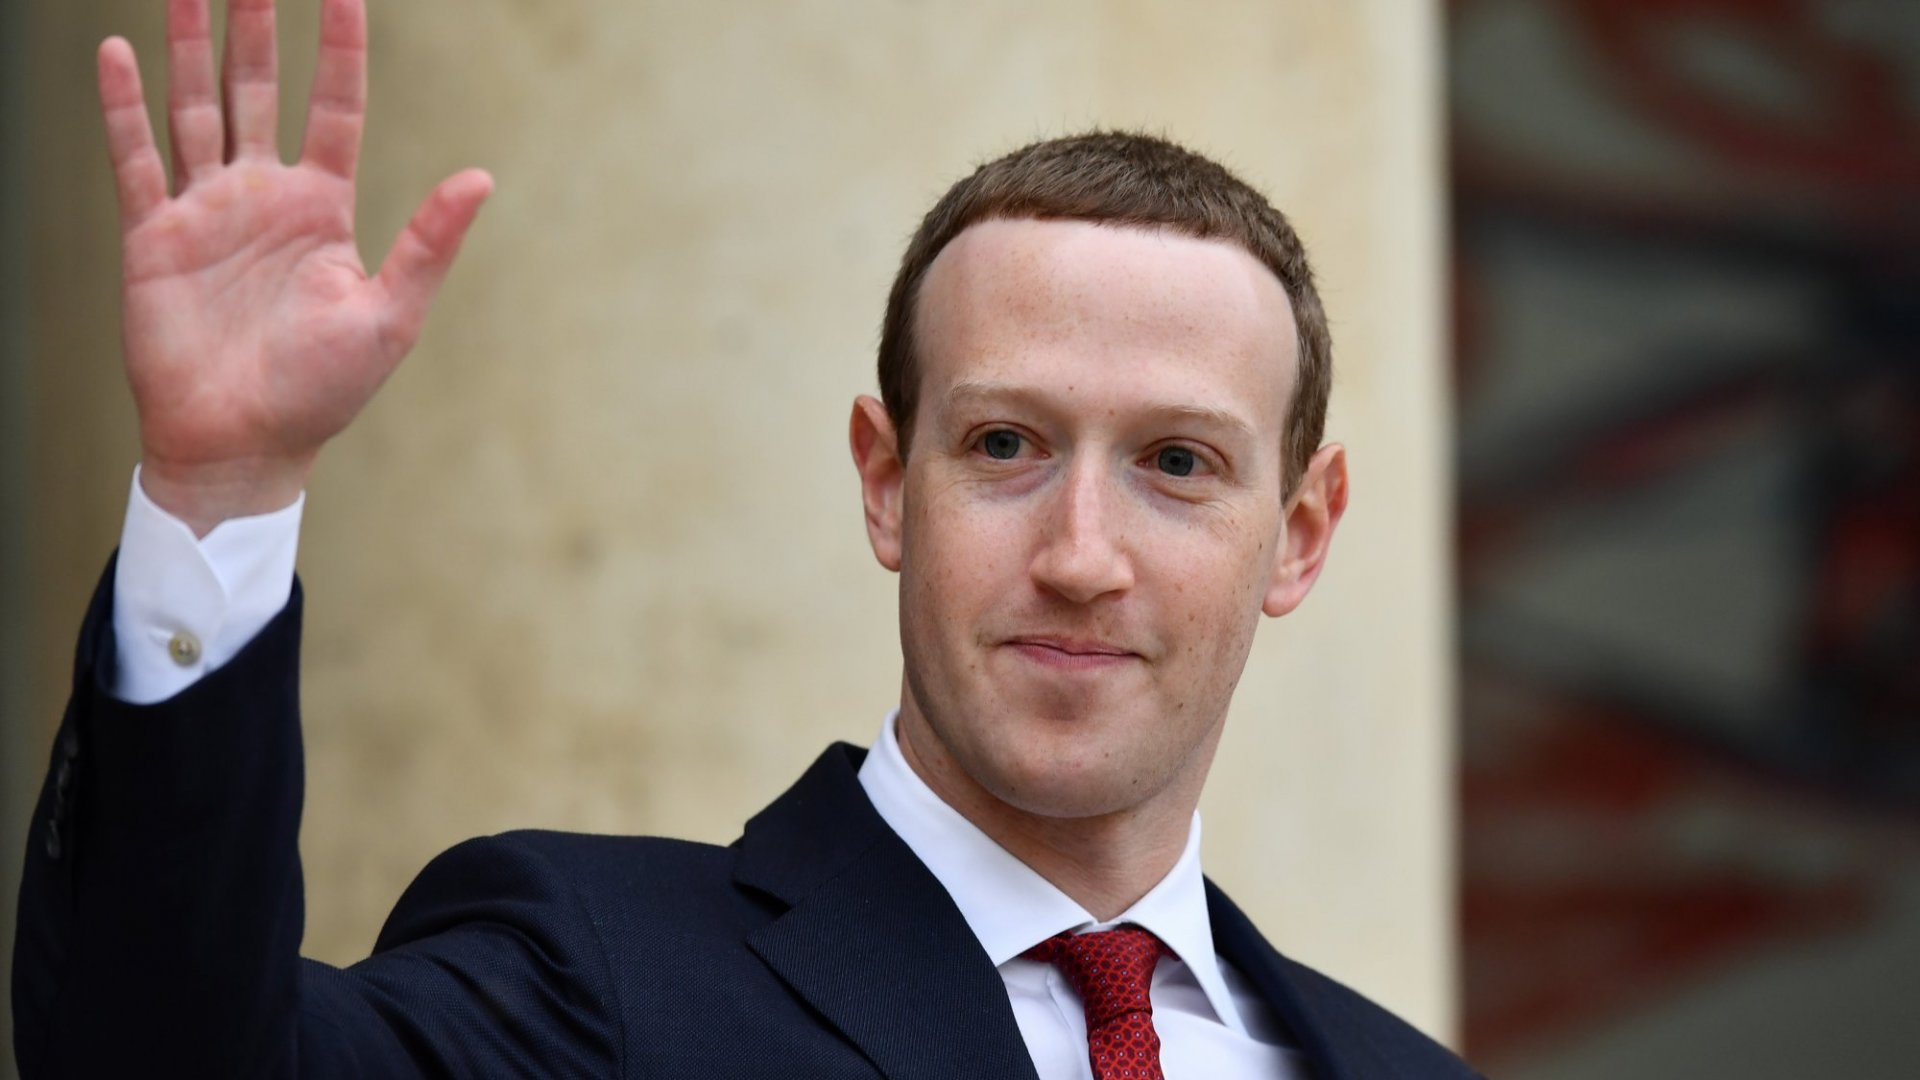 4 Productivity Tips That Will Actually Make You More Productive, According to Mark Zuckerberg, Steve Jobs, and Jeff Bezos